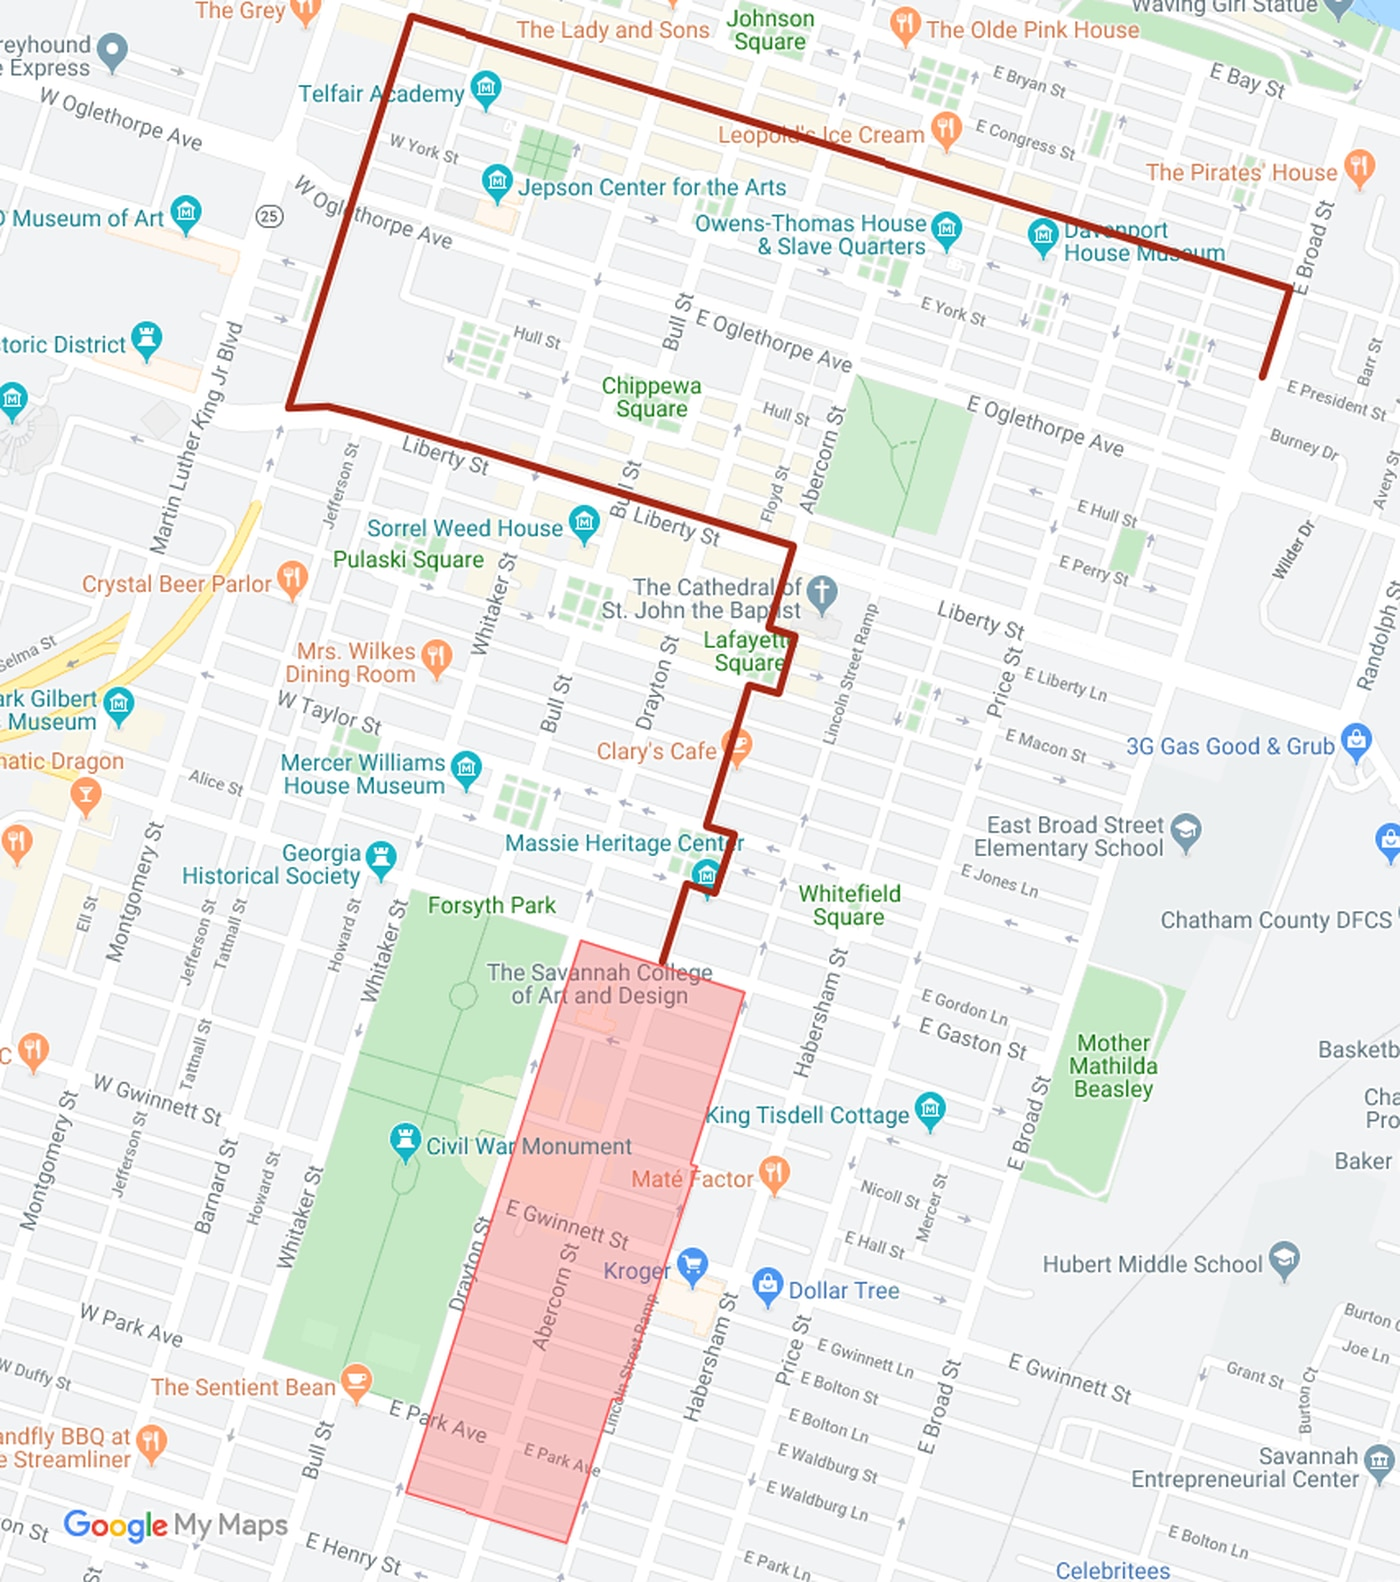 The 2019 Savannah Veterans Day Parade route.